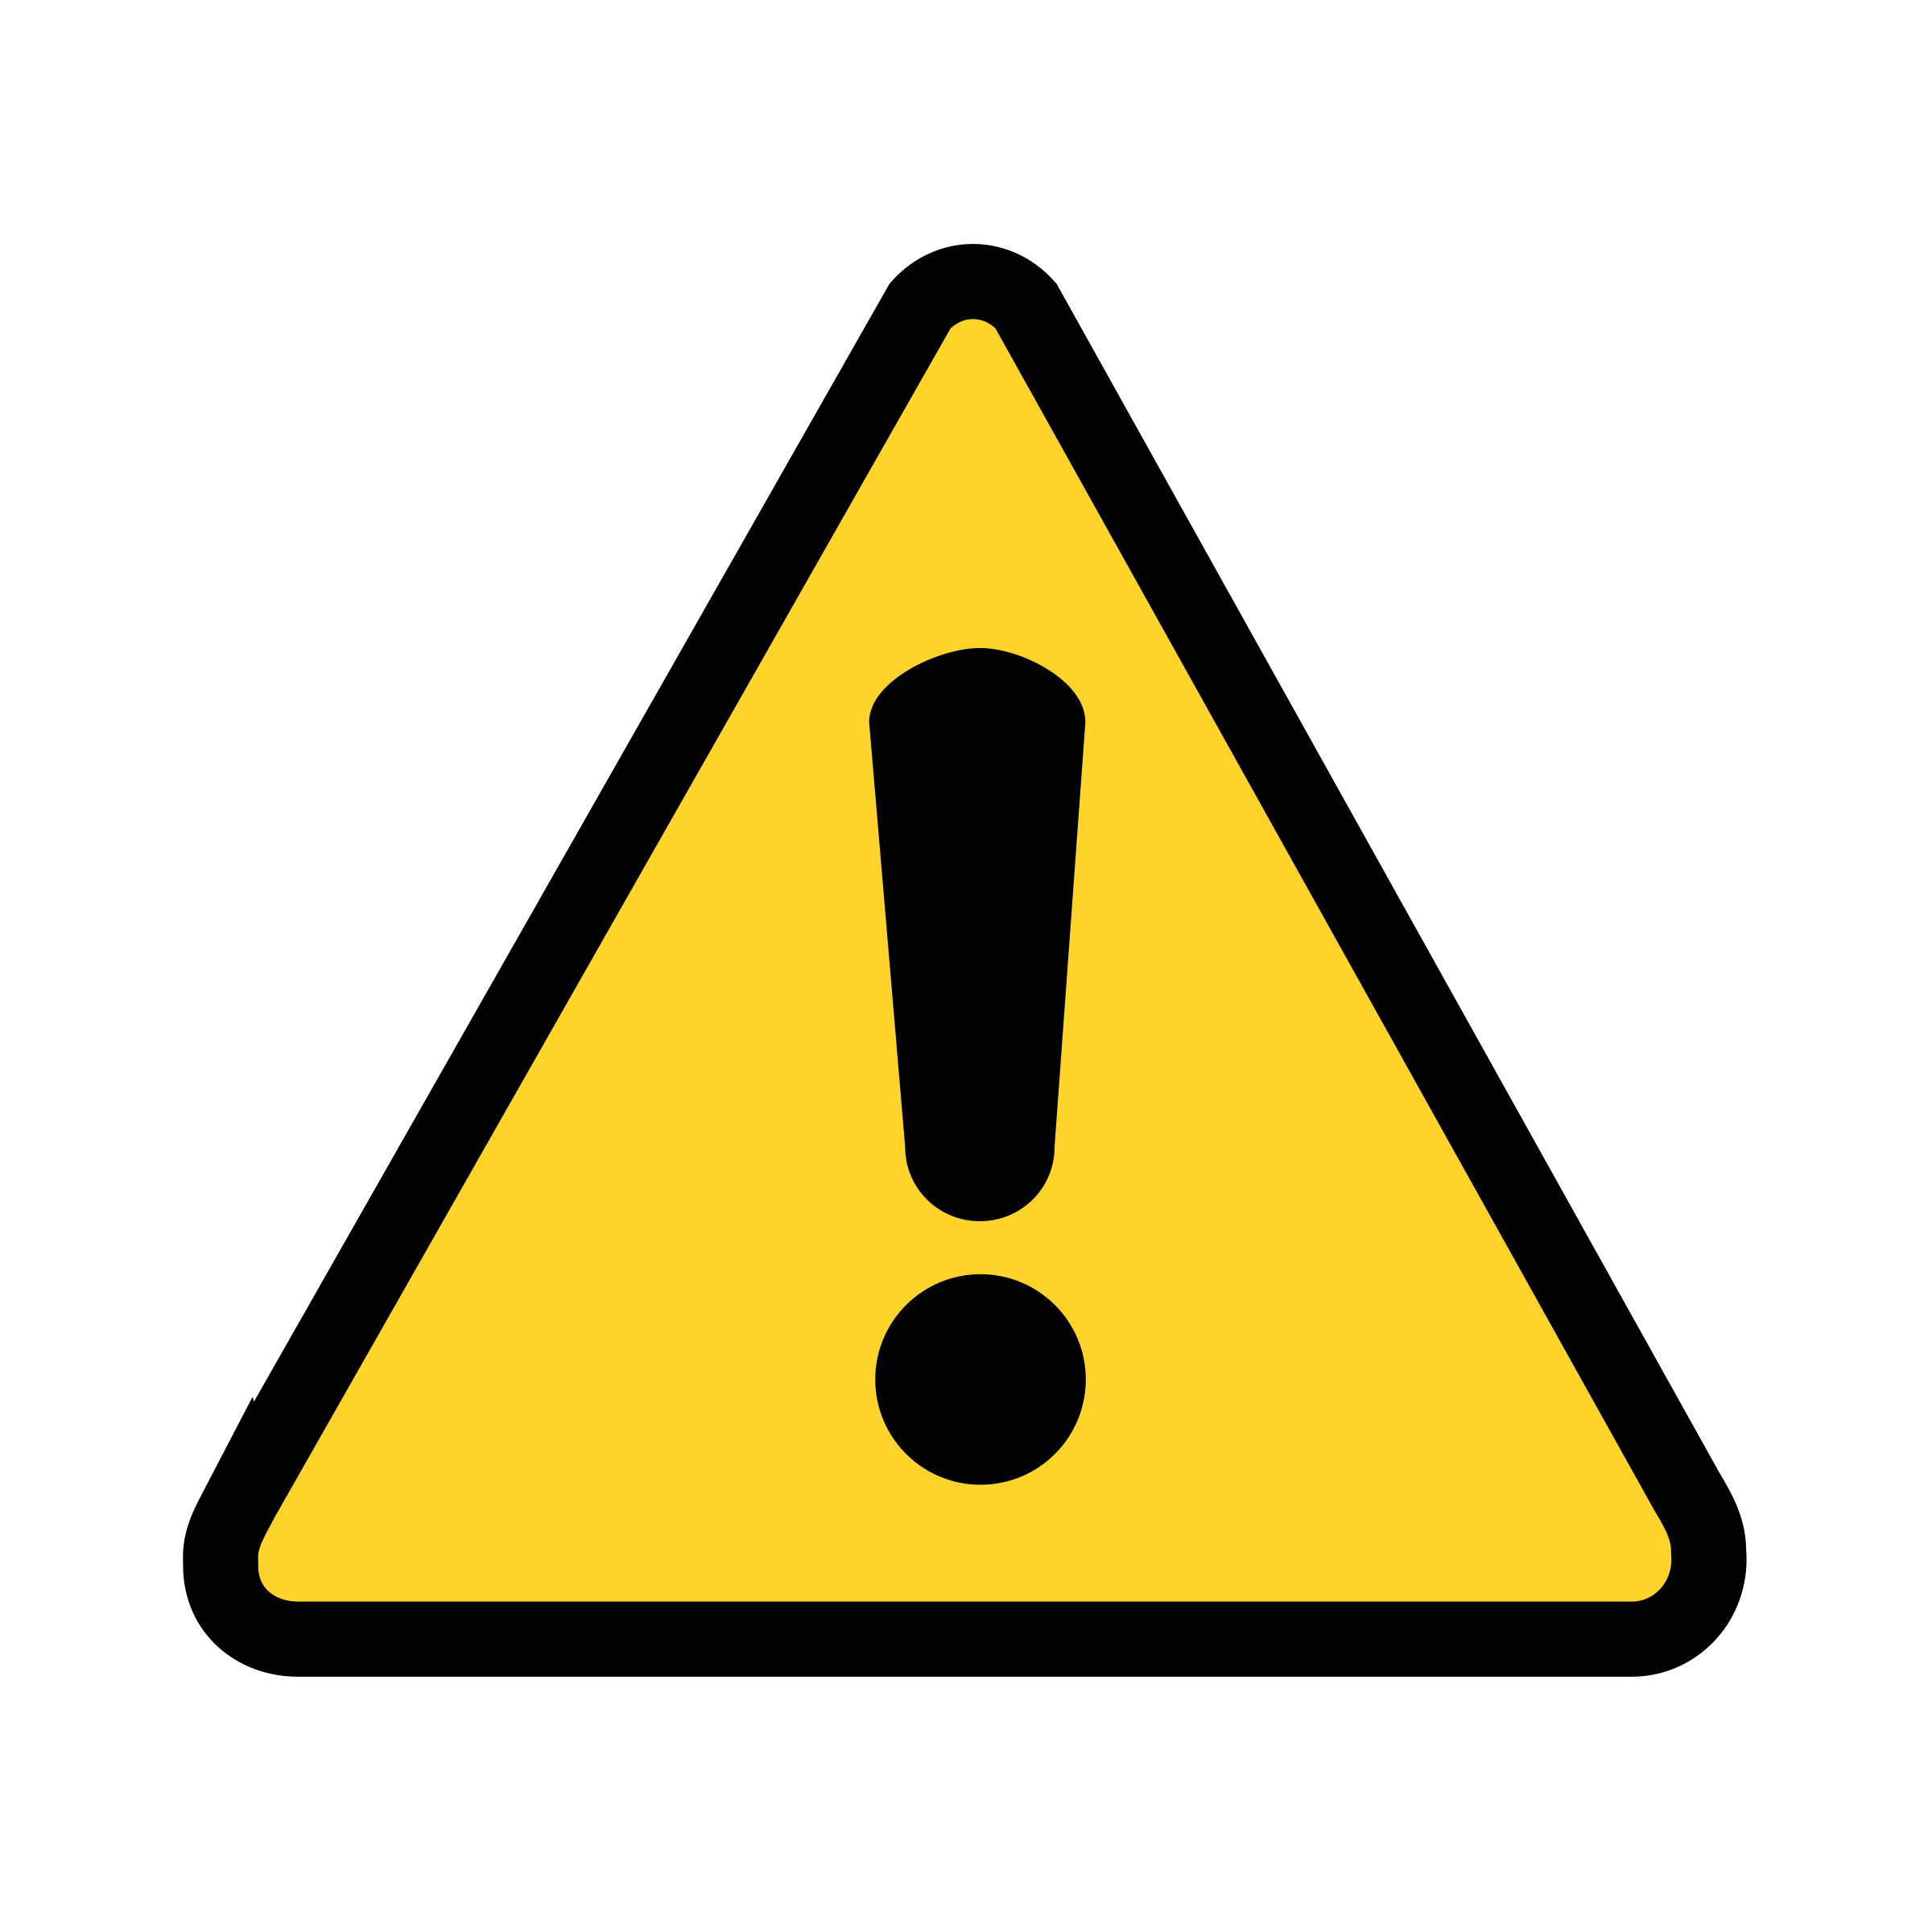 warning-icon-24.png